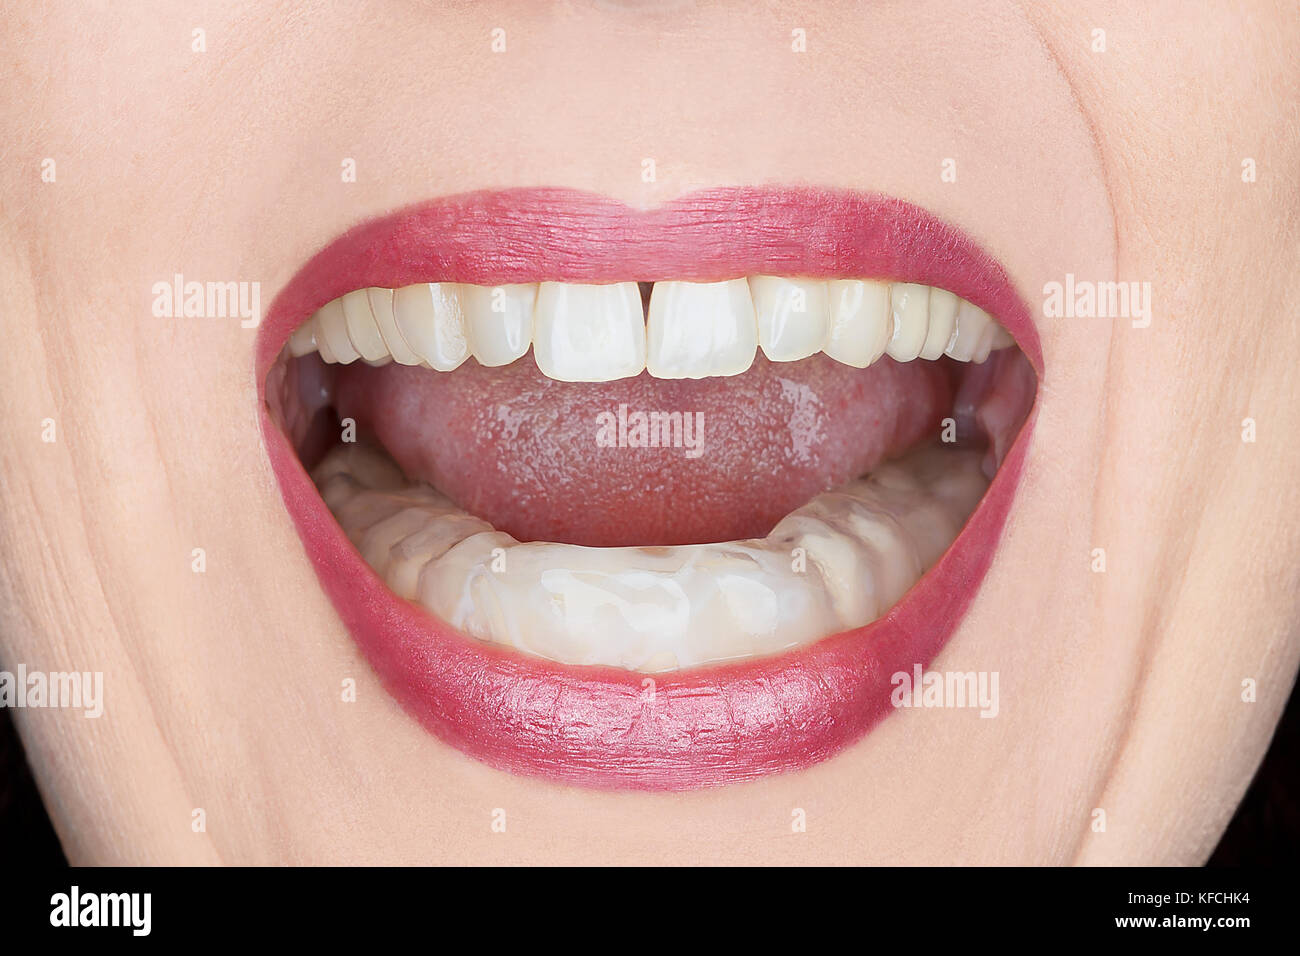 Closeup of an open woman's mouth with plastic teeth guard to stop wear due to grinding at night, caused by excessive Stock Photo